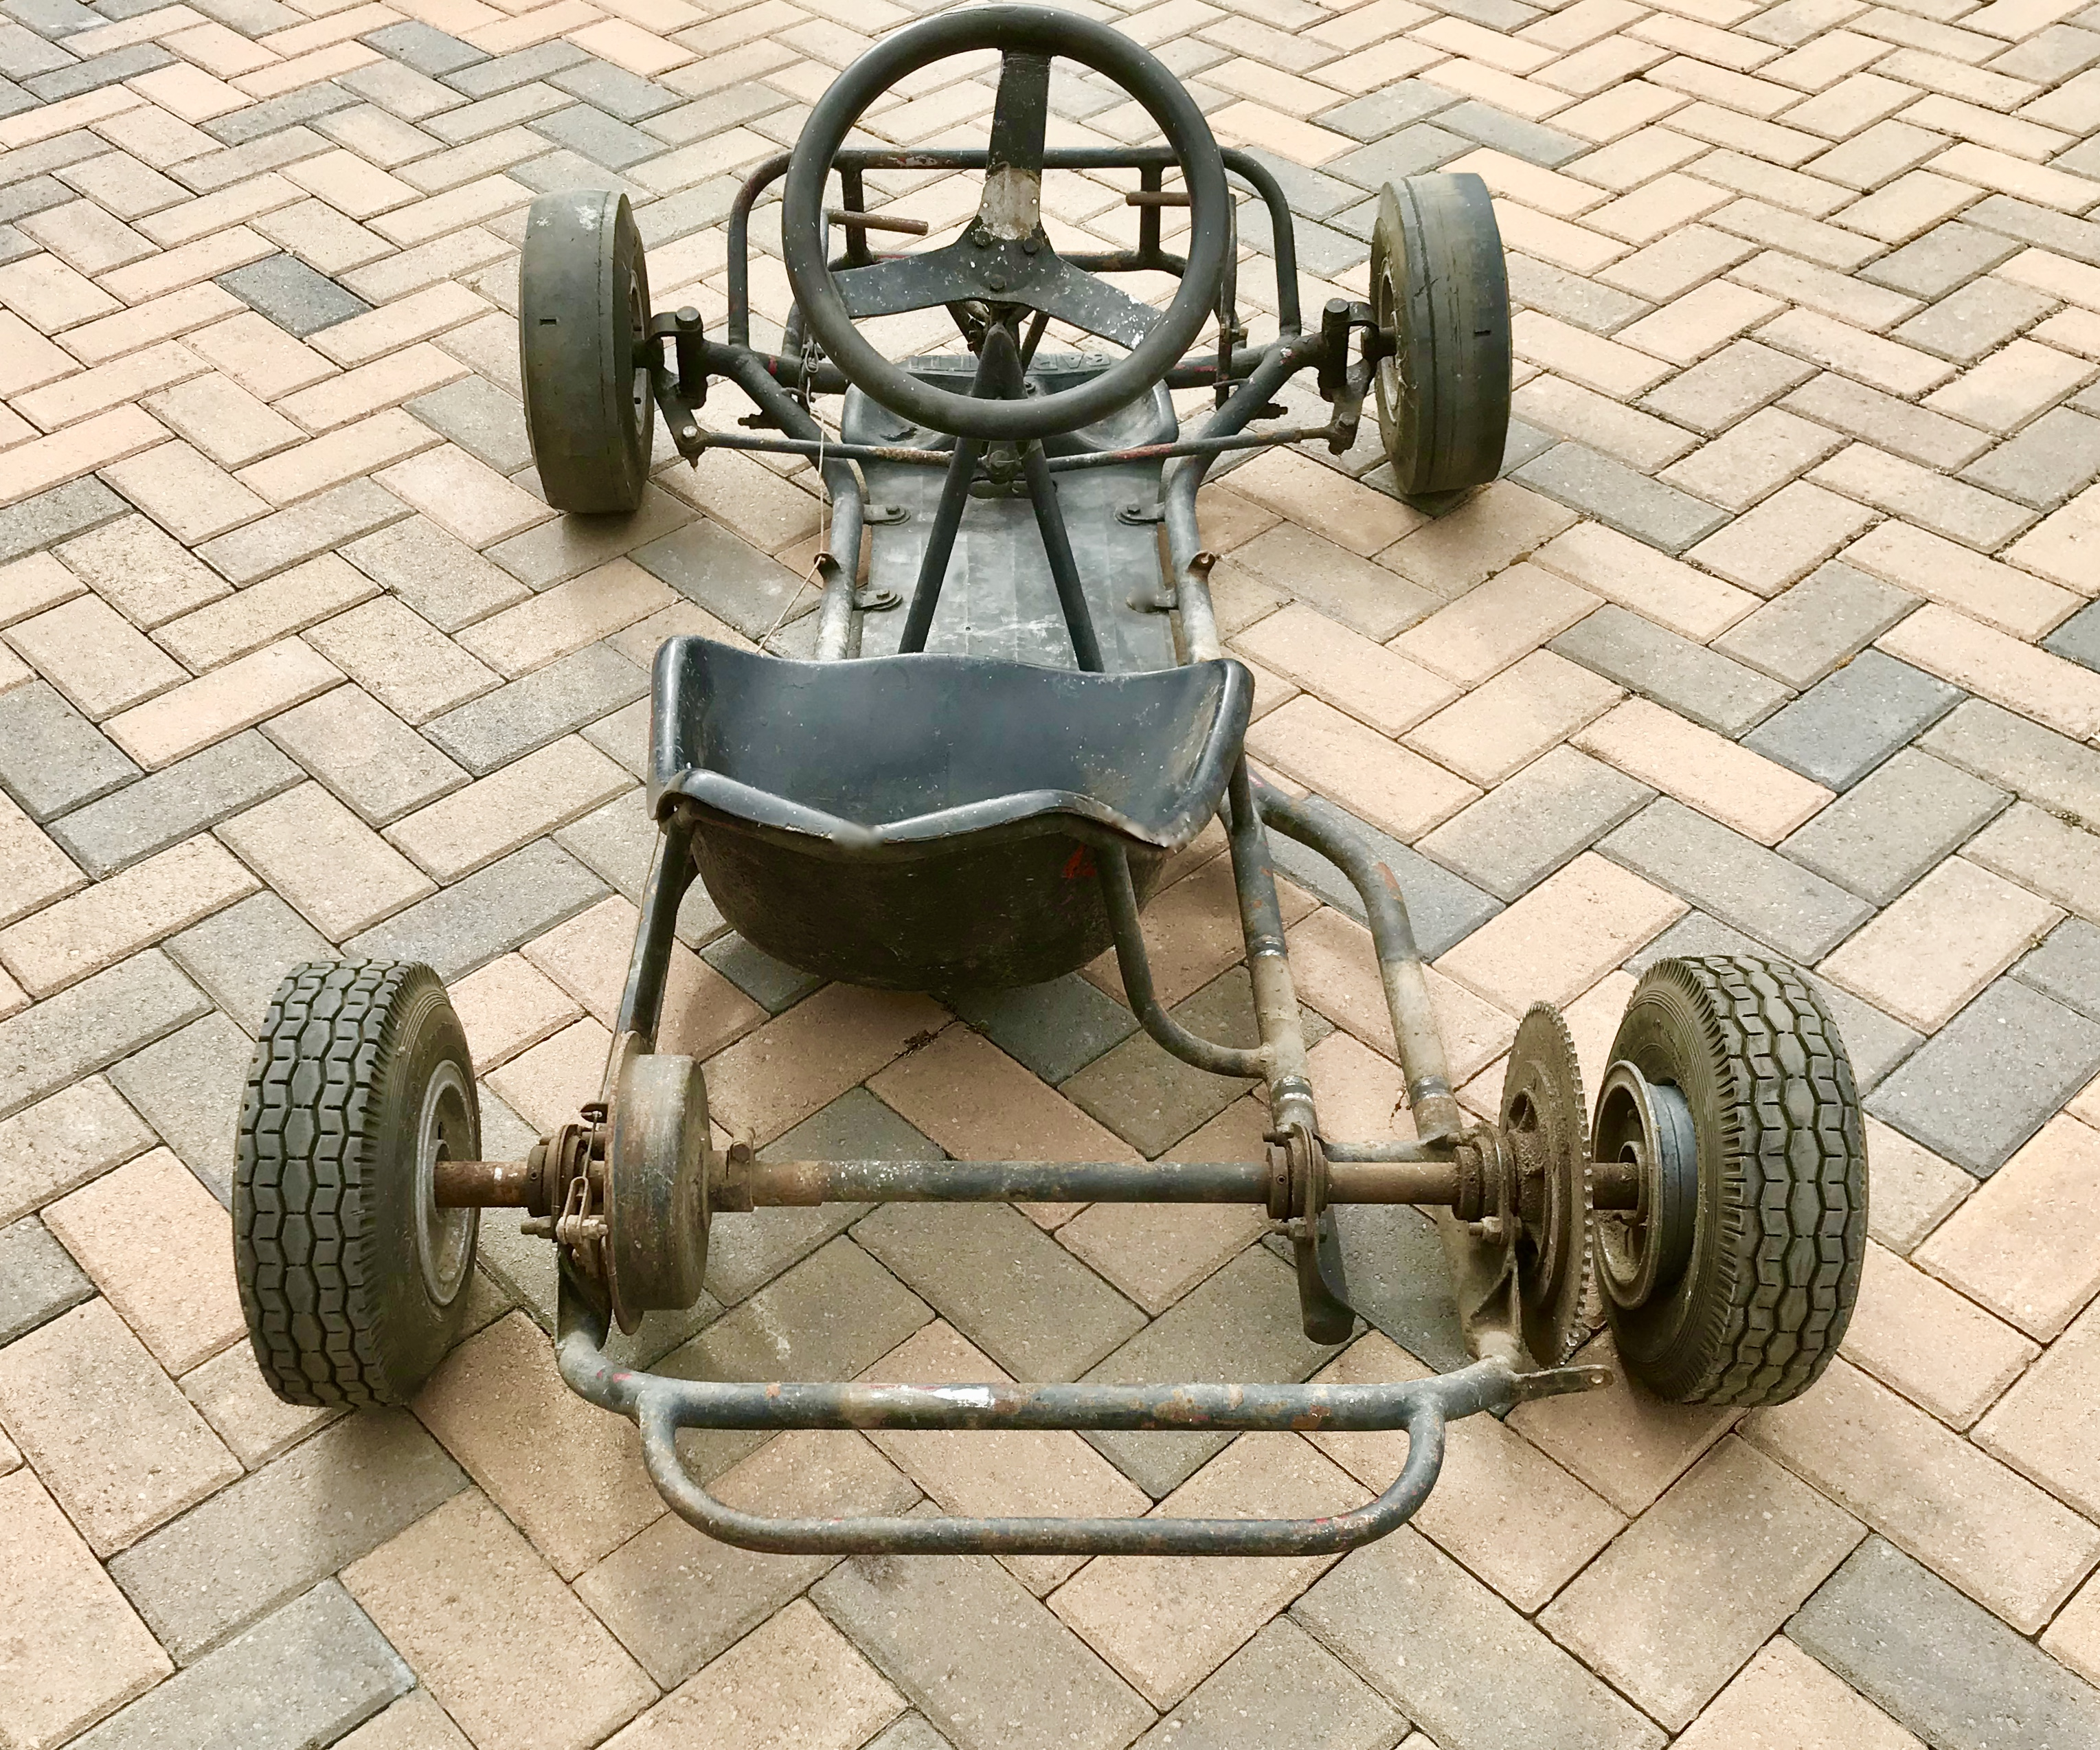 1967 BARLOTTI IMP - Found in Telford